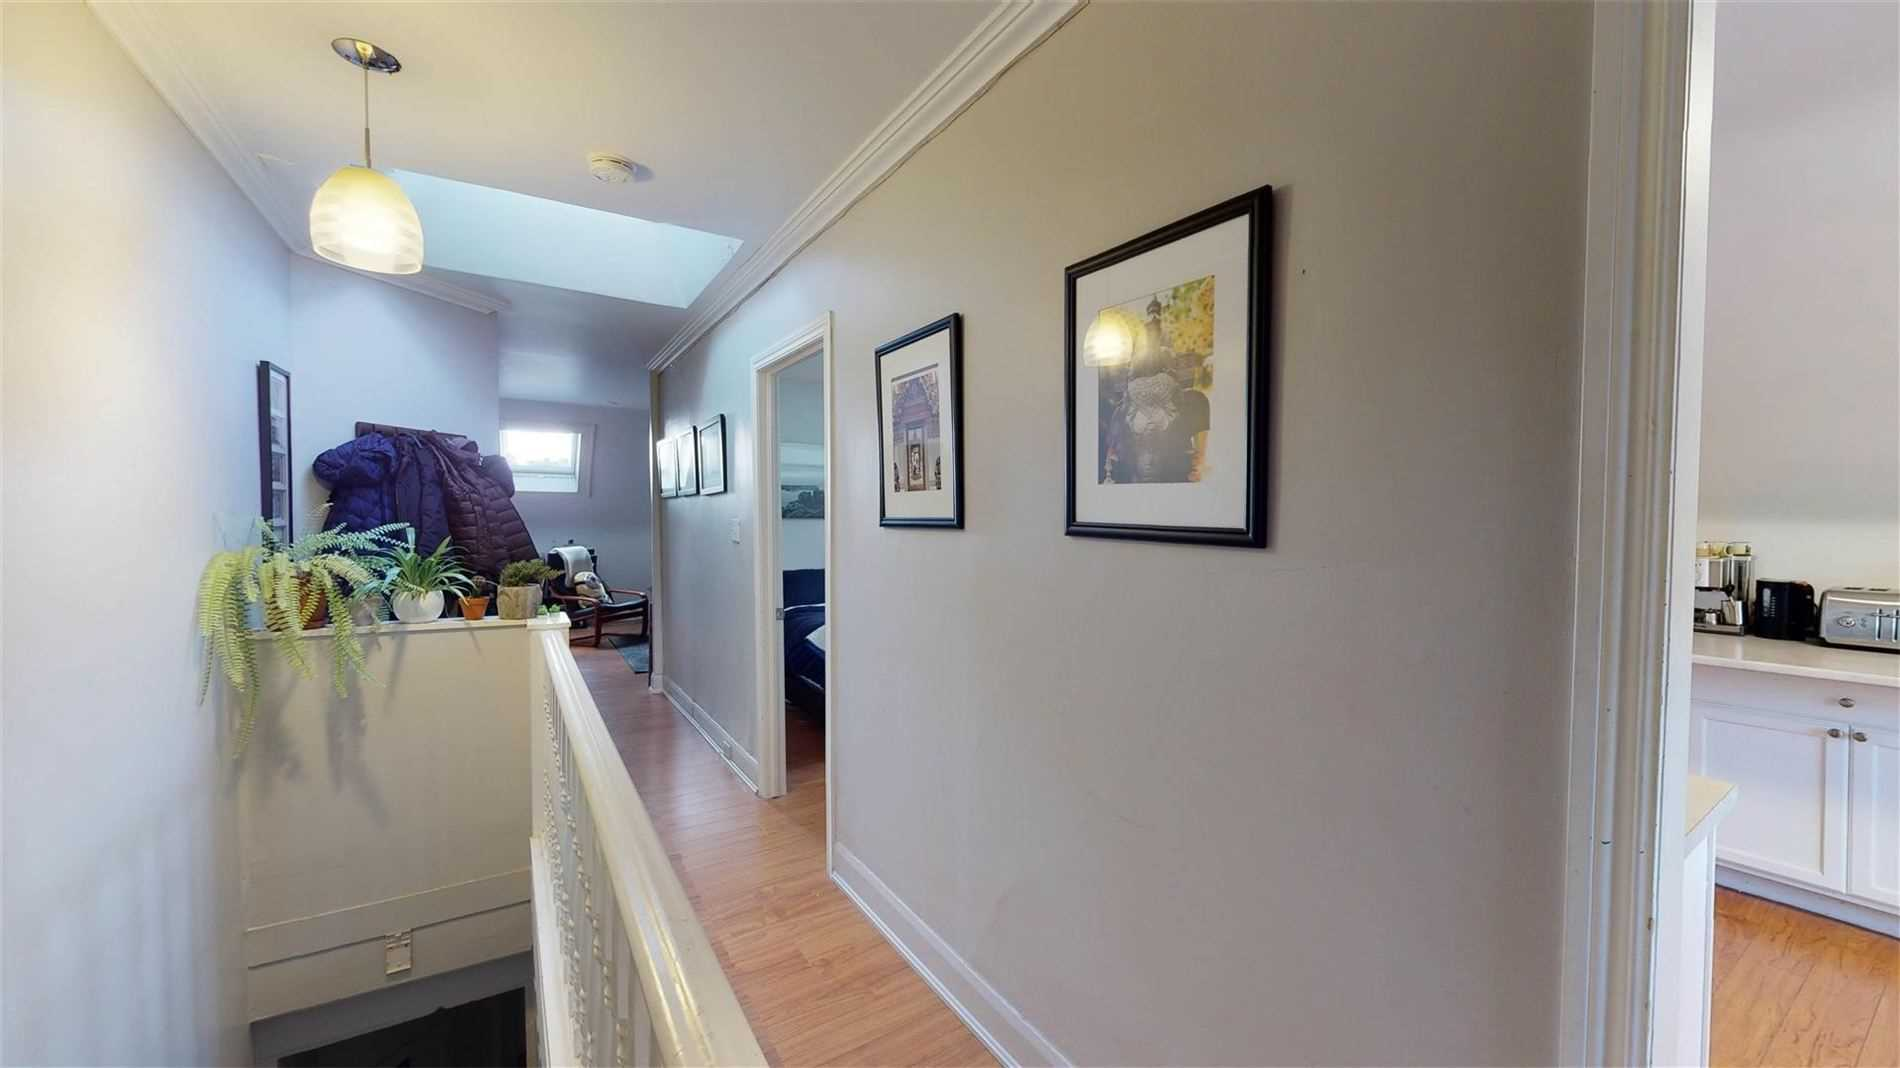 559 Broadview Ave, Toronto, Ontario M4K2N7, ,6 BathroomsBathrooms,Investment,For Sale,Broadview,E4752361